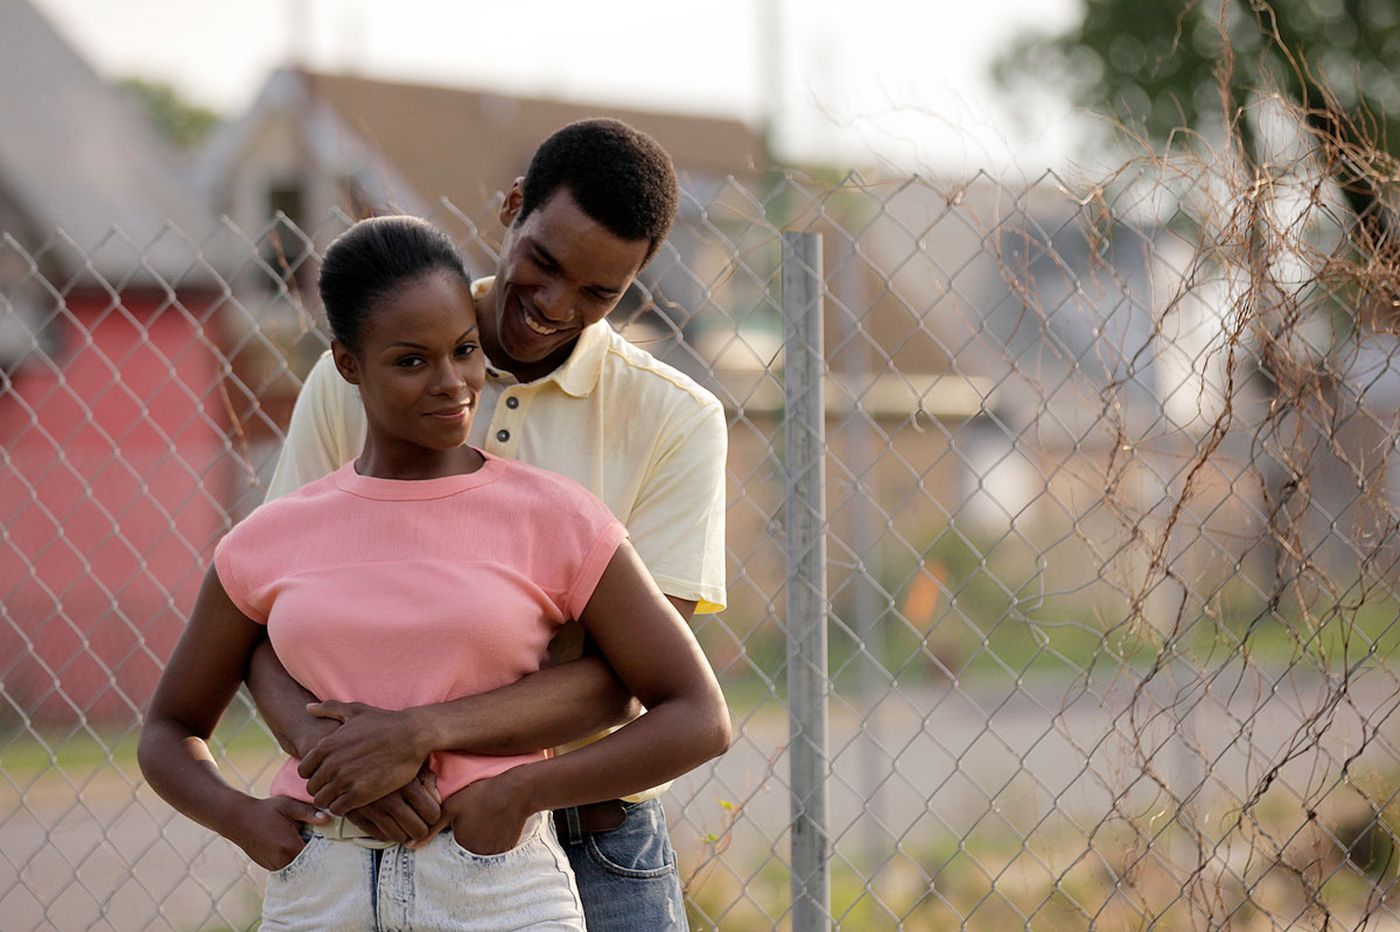 'Southside With You': Tika Sumpter soars in charming love story about Michelle and Barack Obama's first date